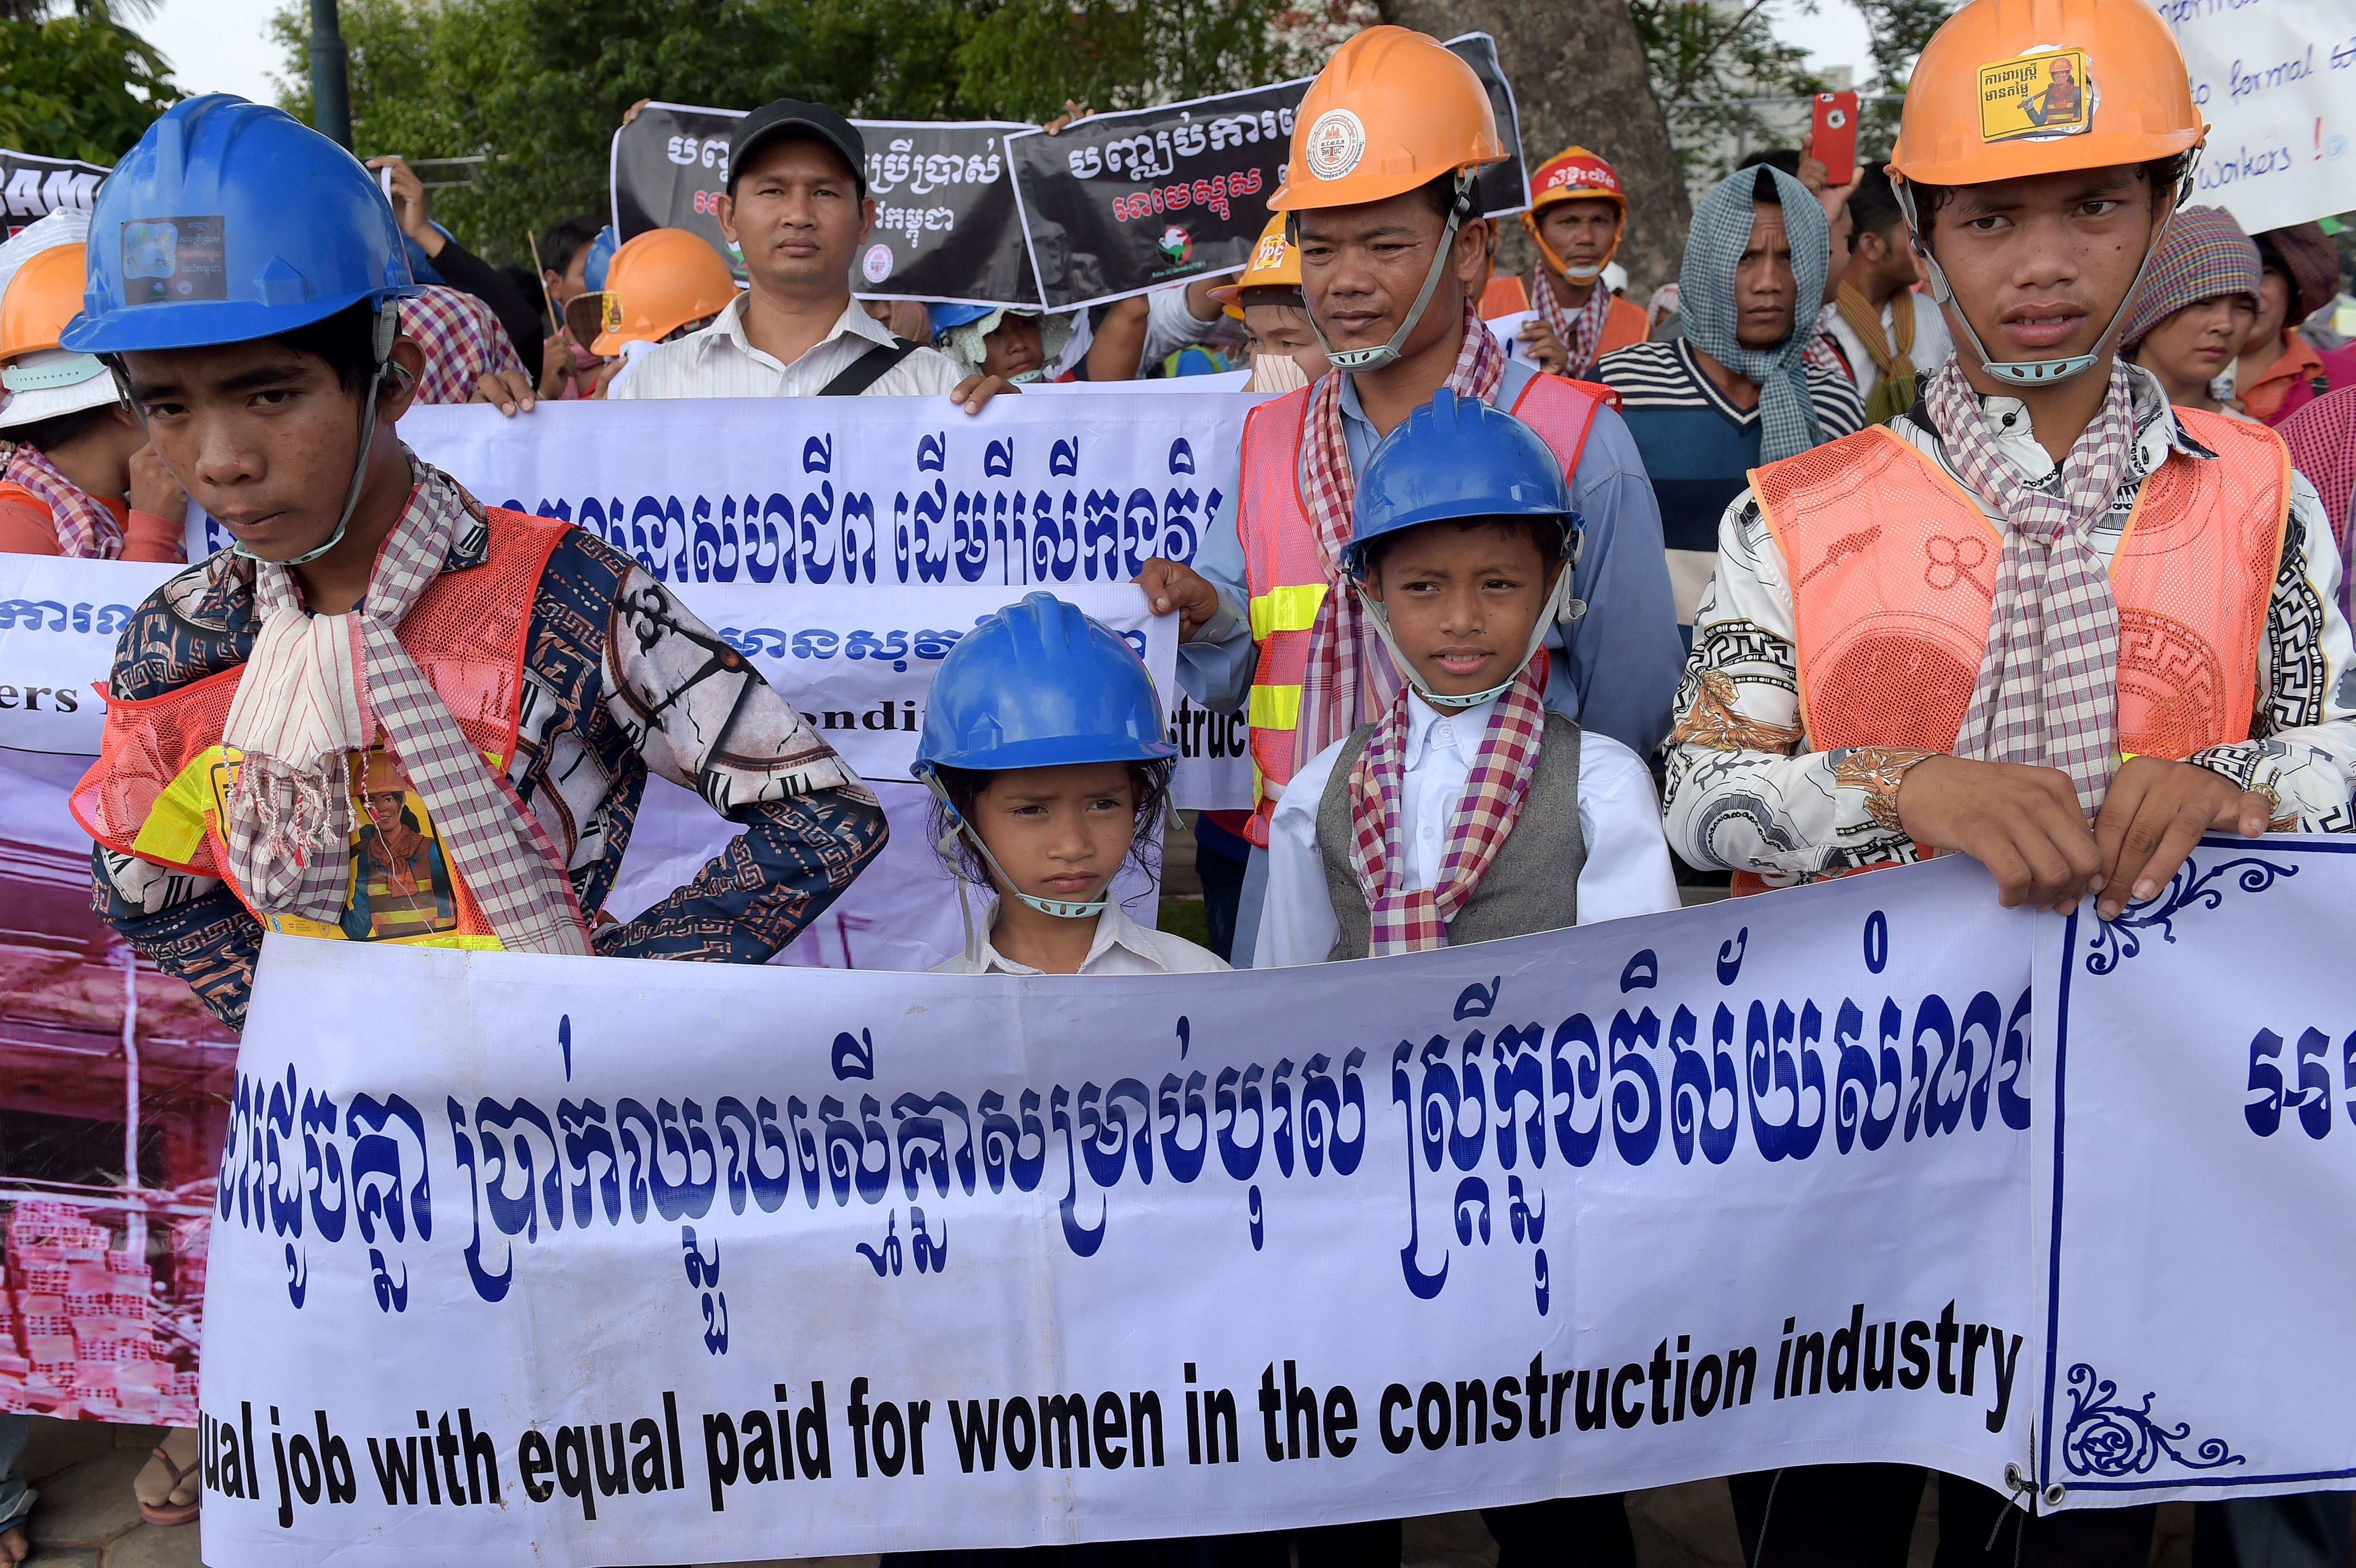 Workers hold placards and banners during a gathering to mark International Labour Day, or May Day, in Phnom Penh, Cambodia on May 1, 2018.